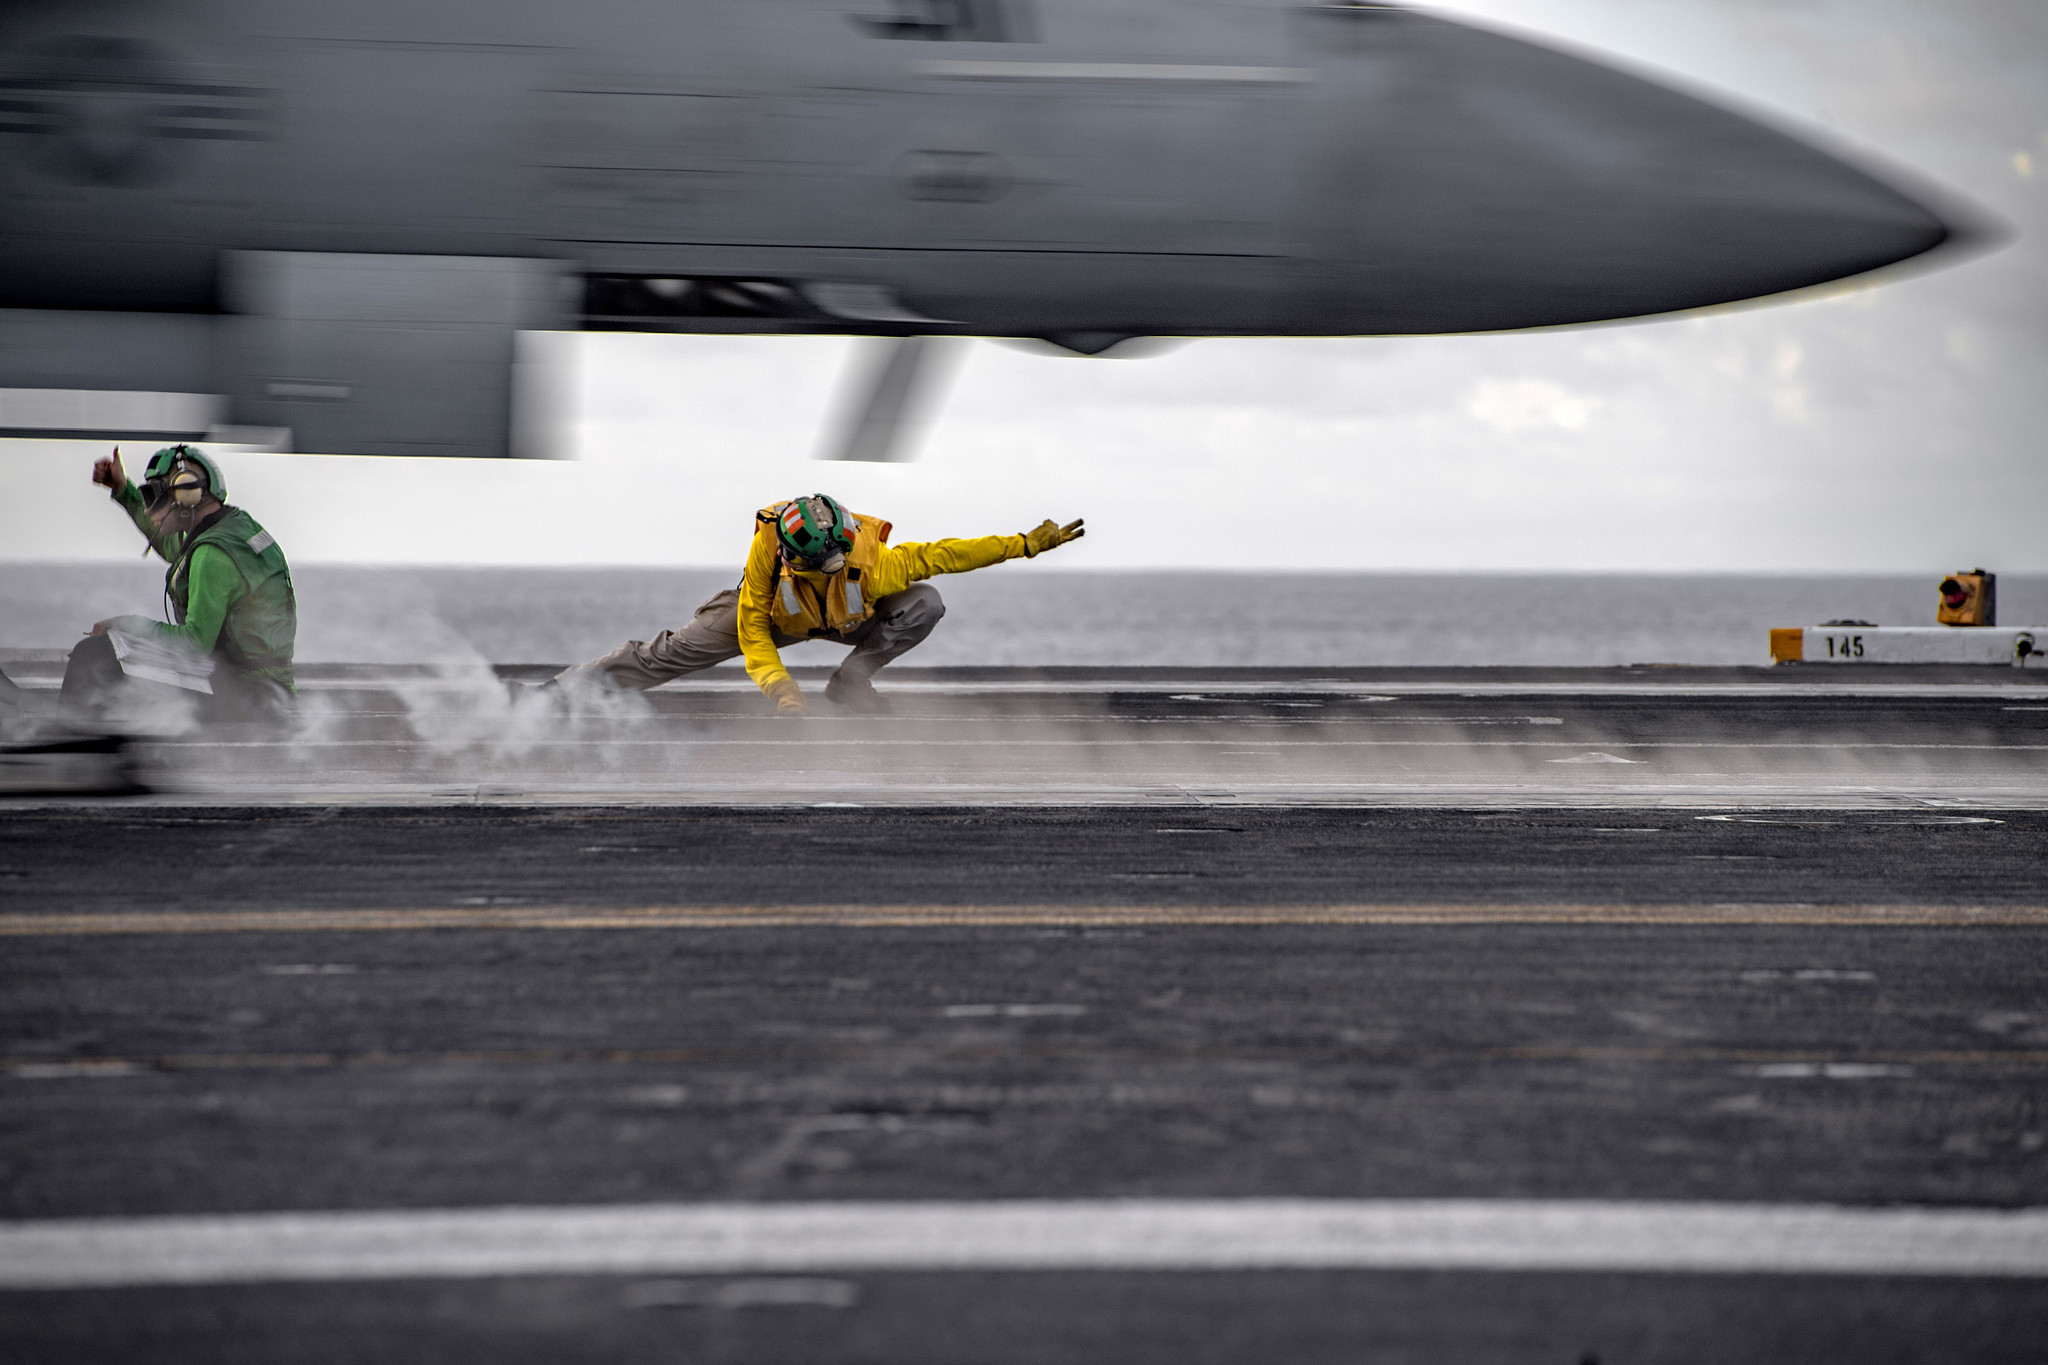 Sailors conduct flight operations aboard the aircraft carrier USS Nimitz (CVN 68) on June 28, 2020, in the Philippine Sea. The Nimitz and Ronald Reagan Carrier Strike Groups are conducting dual carrier operations in the Indo-Pacific as the Nimitz Carrier Strike Force. (MC3 Kyle Merritt/Navy)